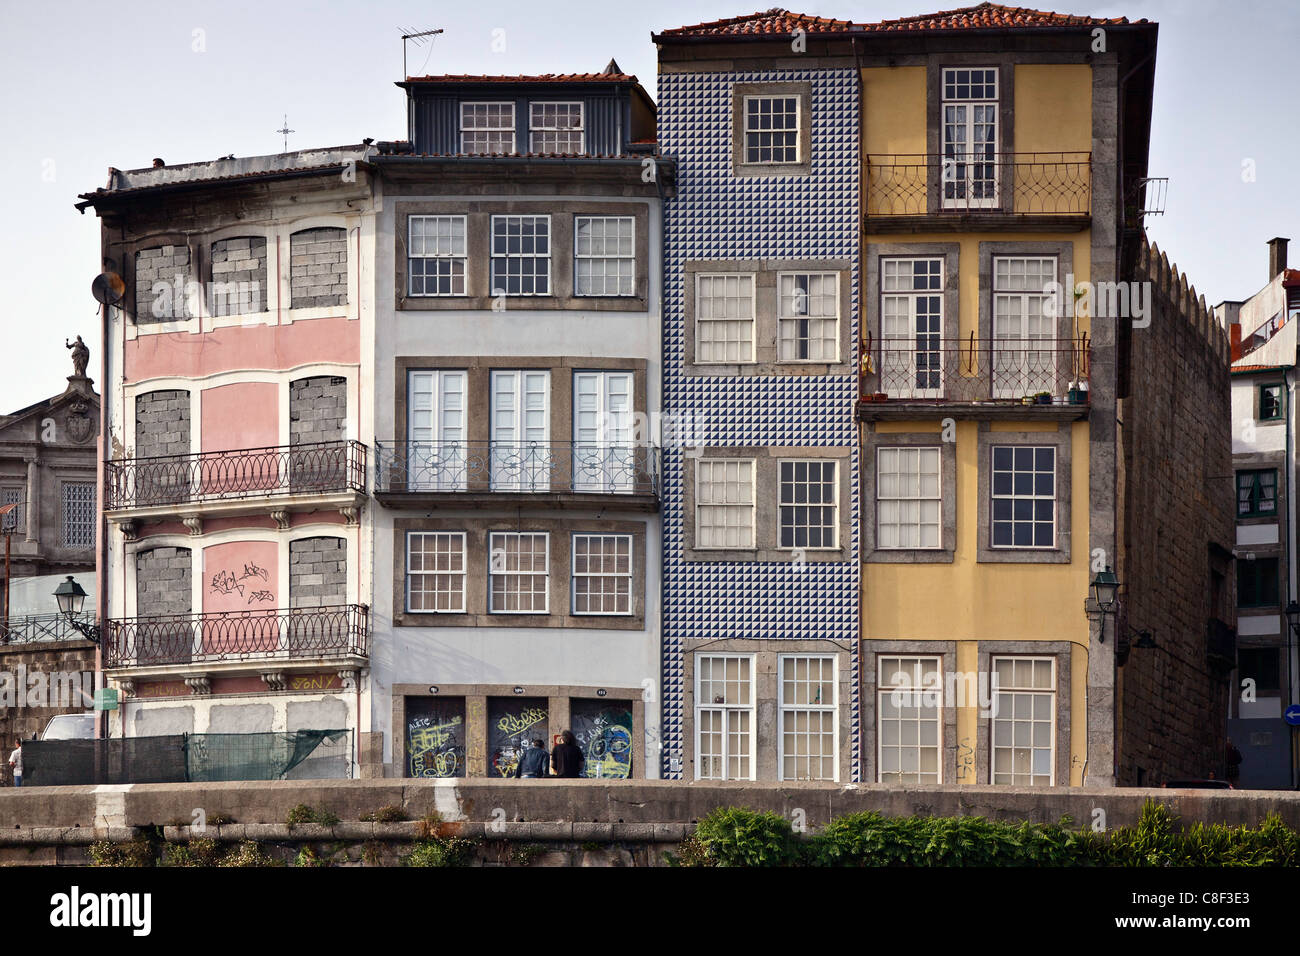 Porto, traditional buildings by the River Douro with two people and grafitti - Stock Image